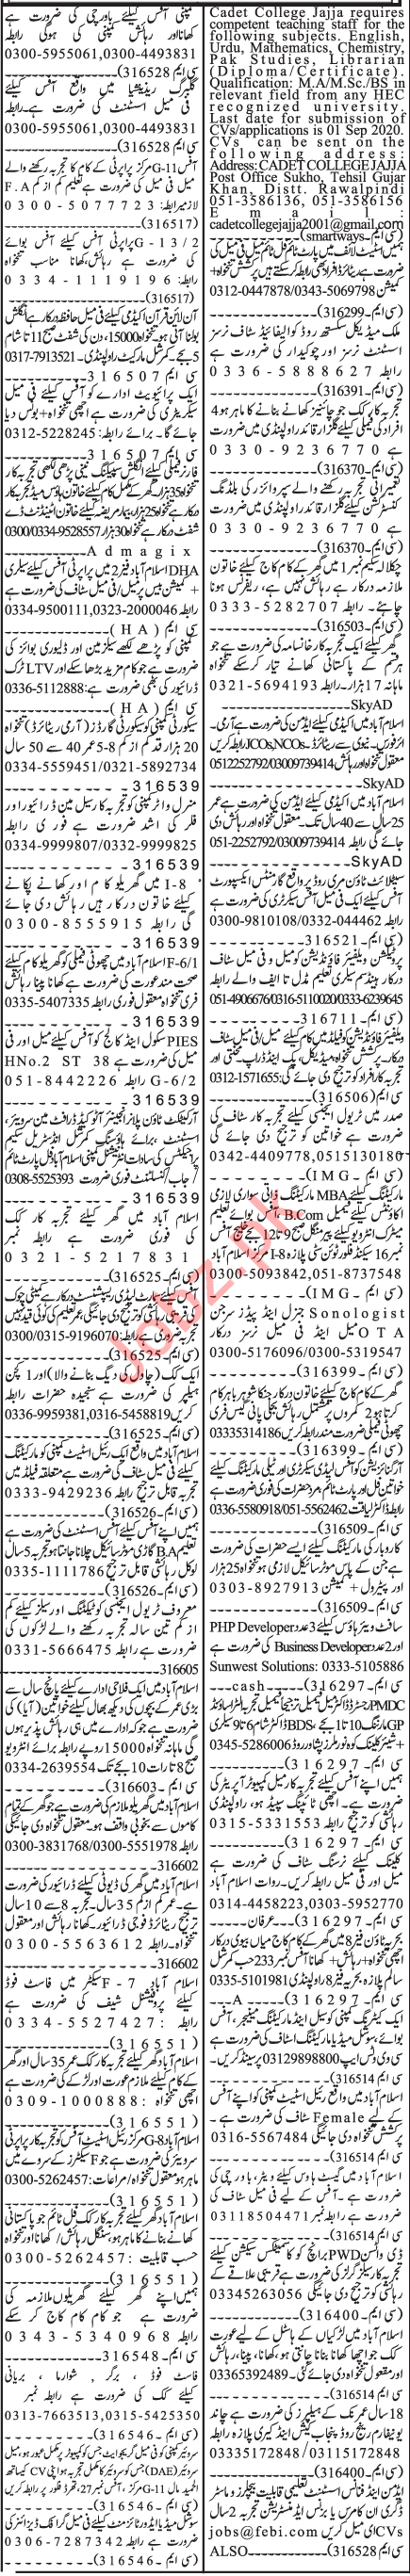 Jang Sunday Classified Ads 23 Aug 2020 for Office Staff